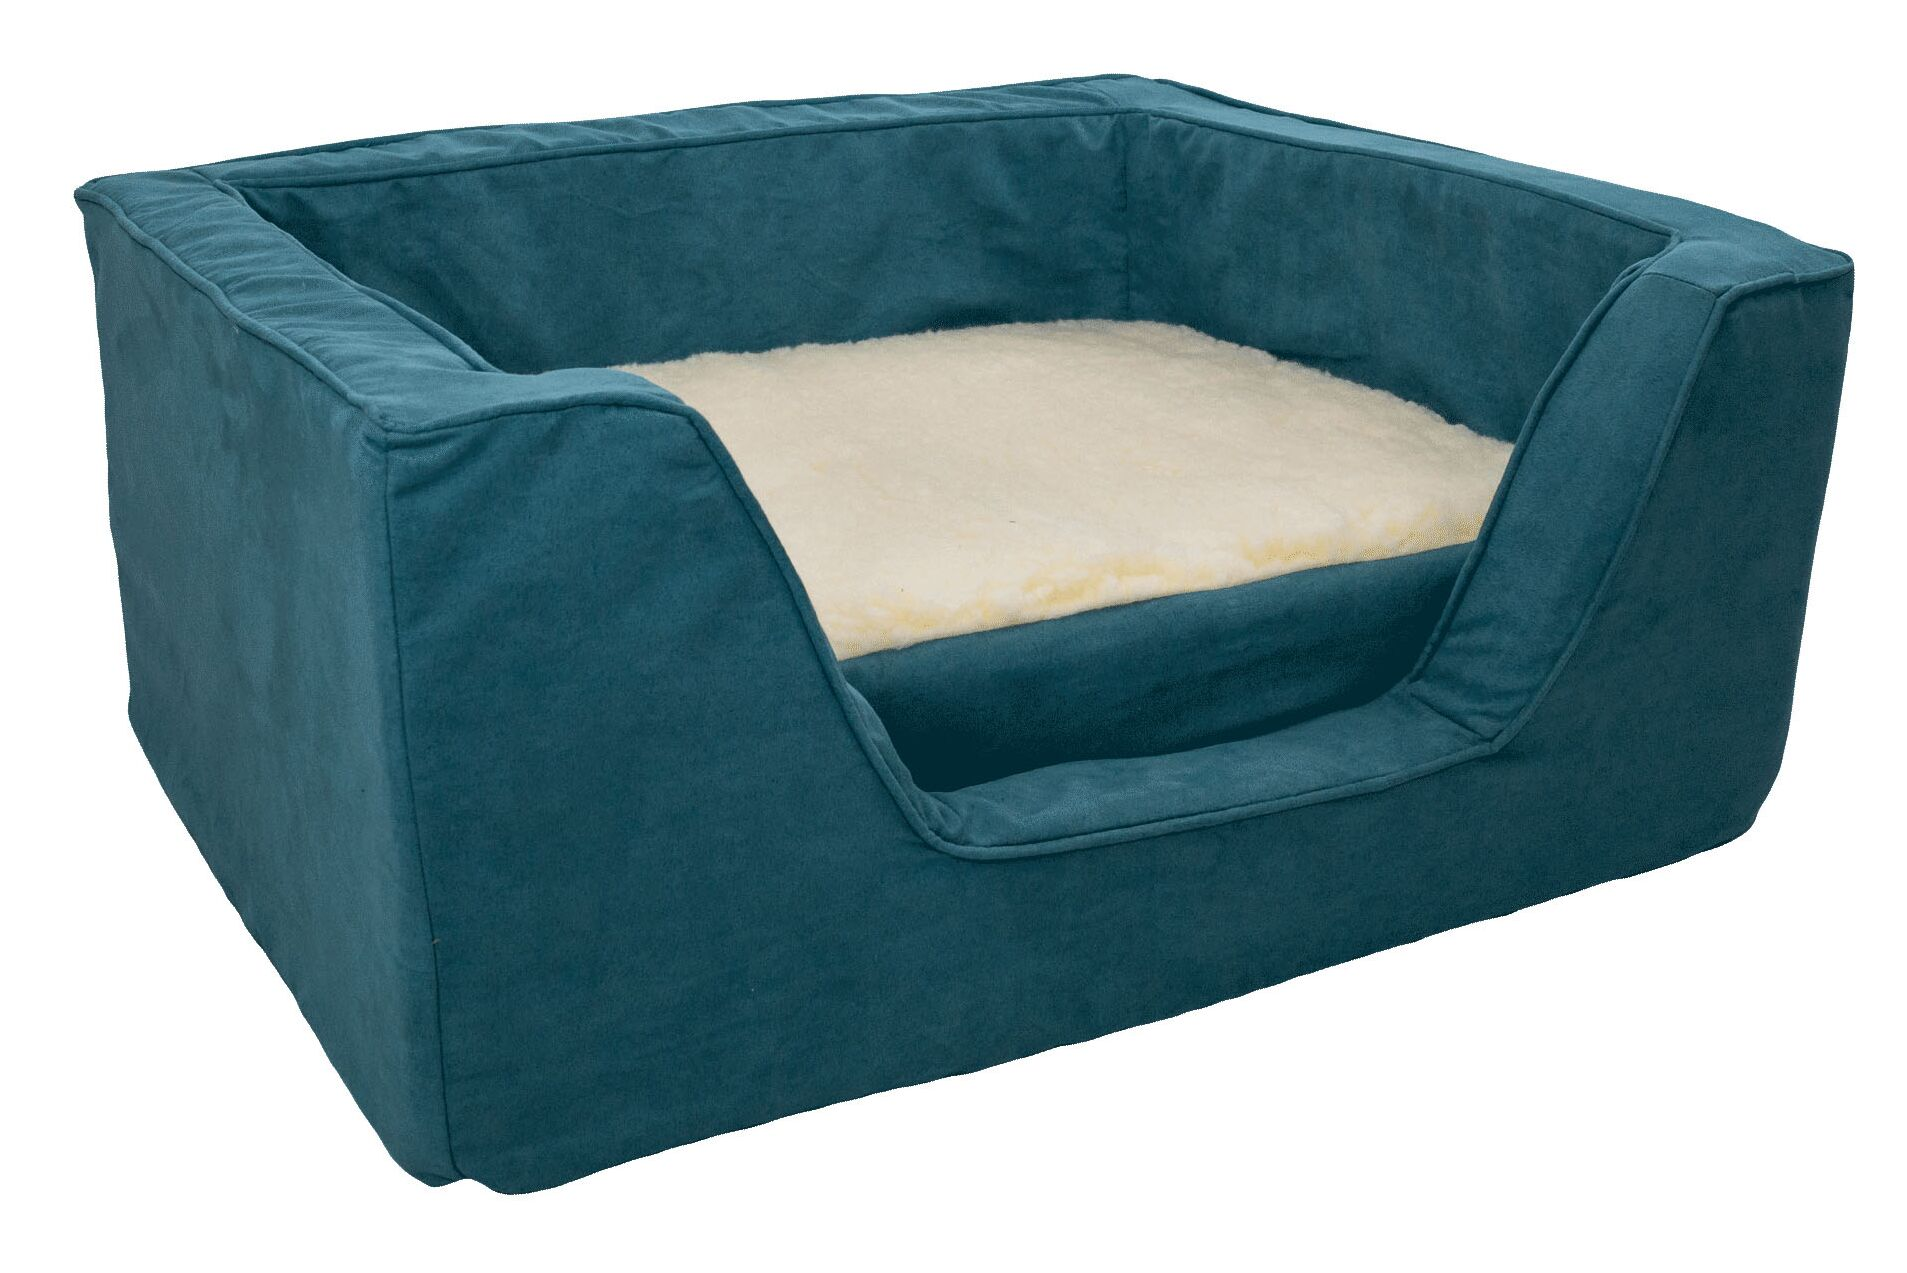 Luxury Solids Micro Suede Bolster with Memory Foam Size: Extra Large (31.5